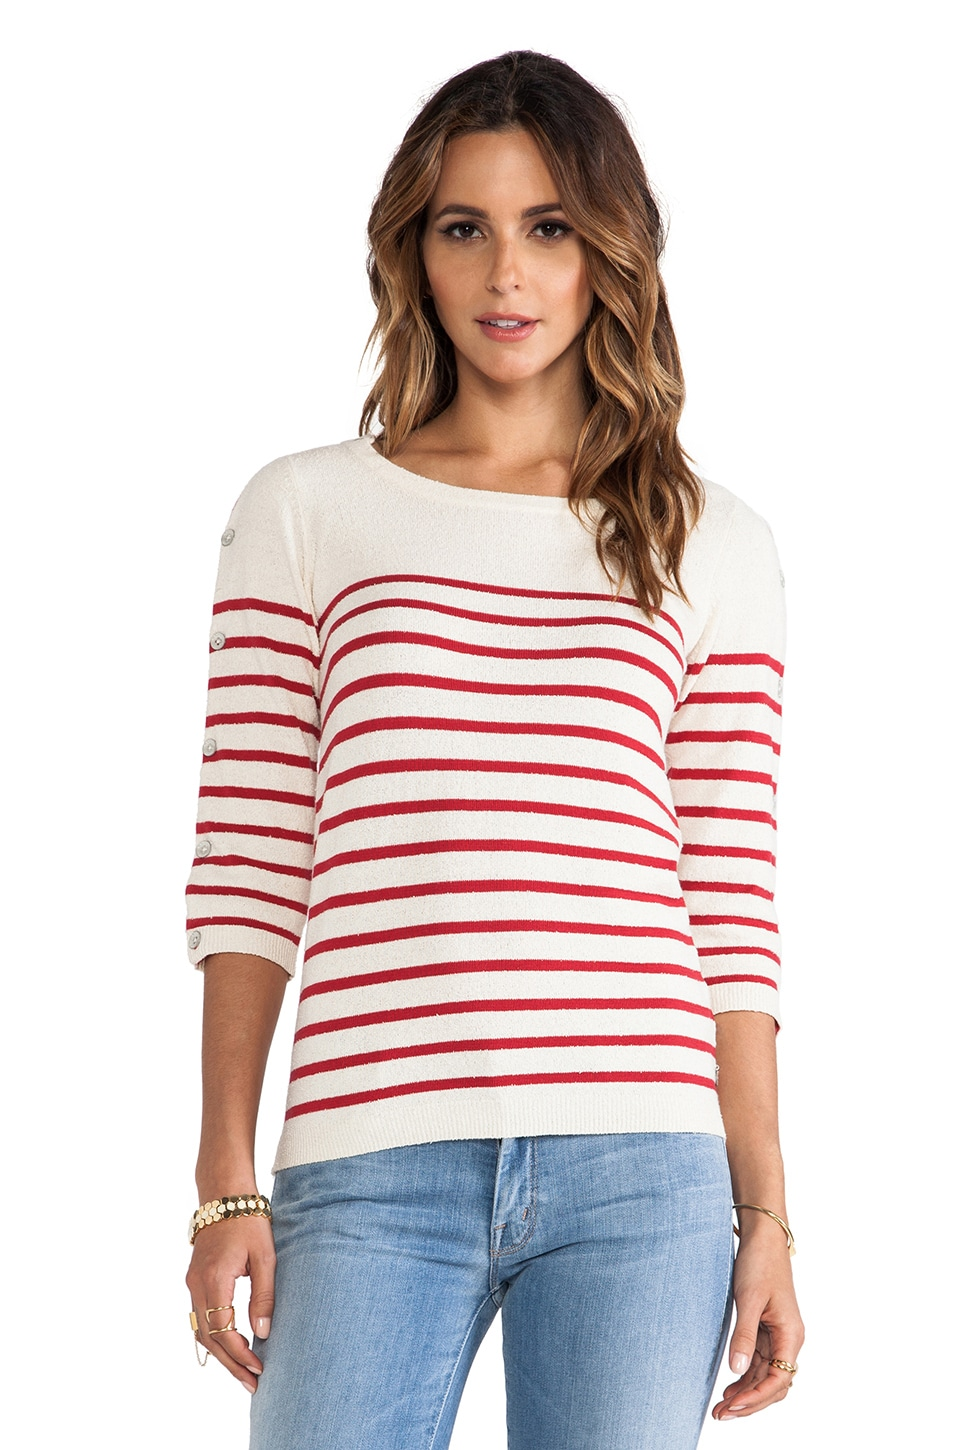 Maison Scotch Retro Sailor Sweater in Red & White